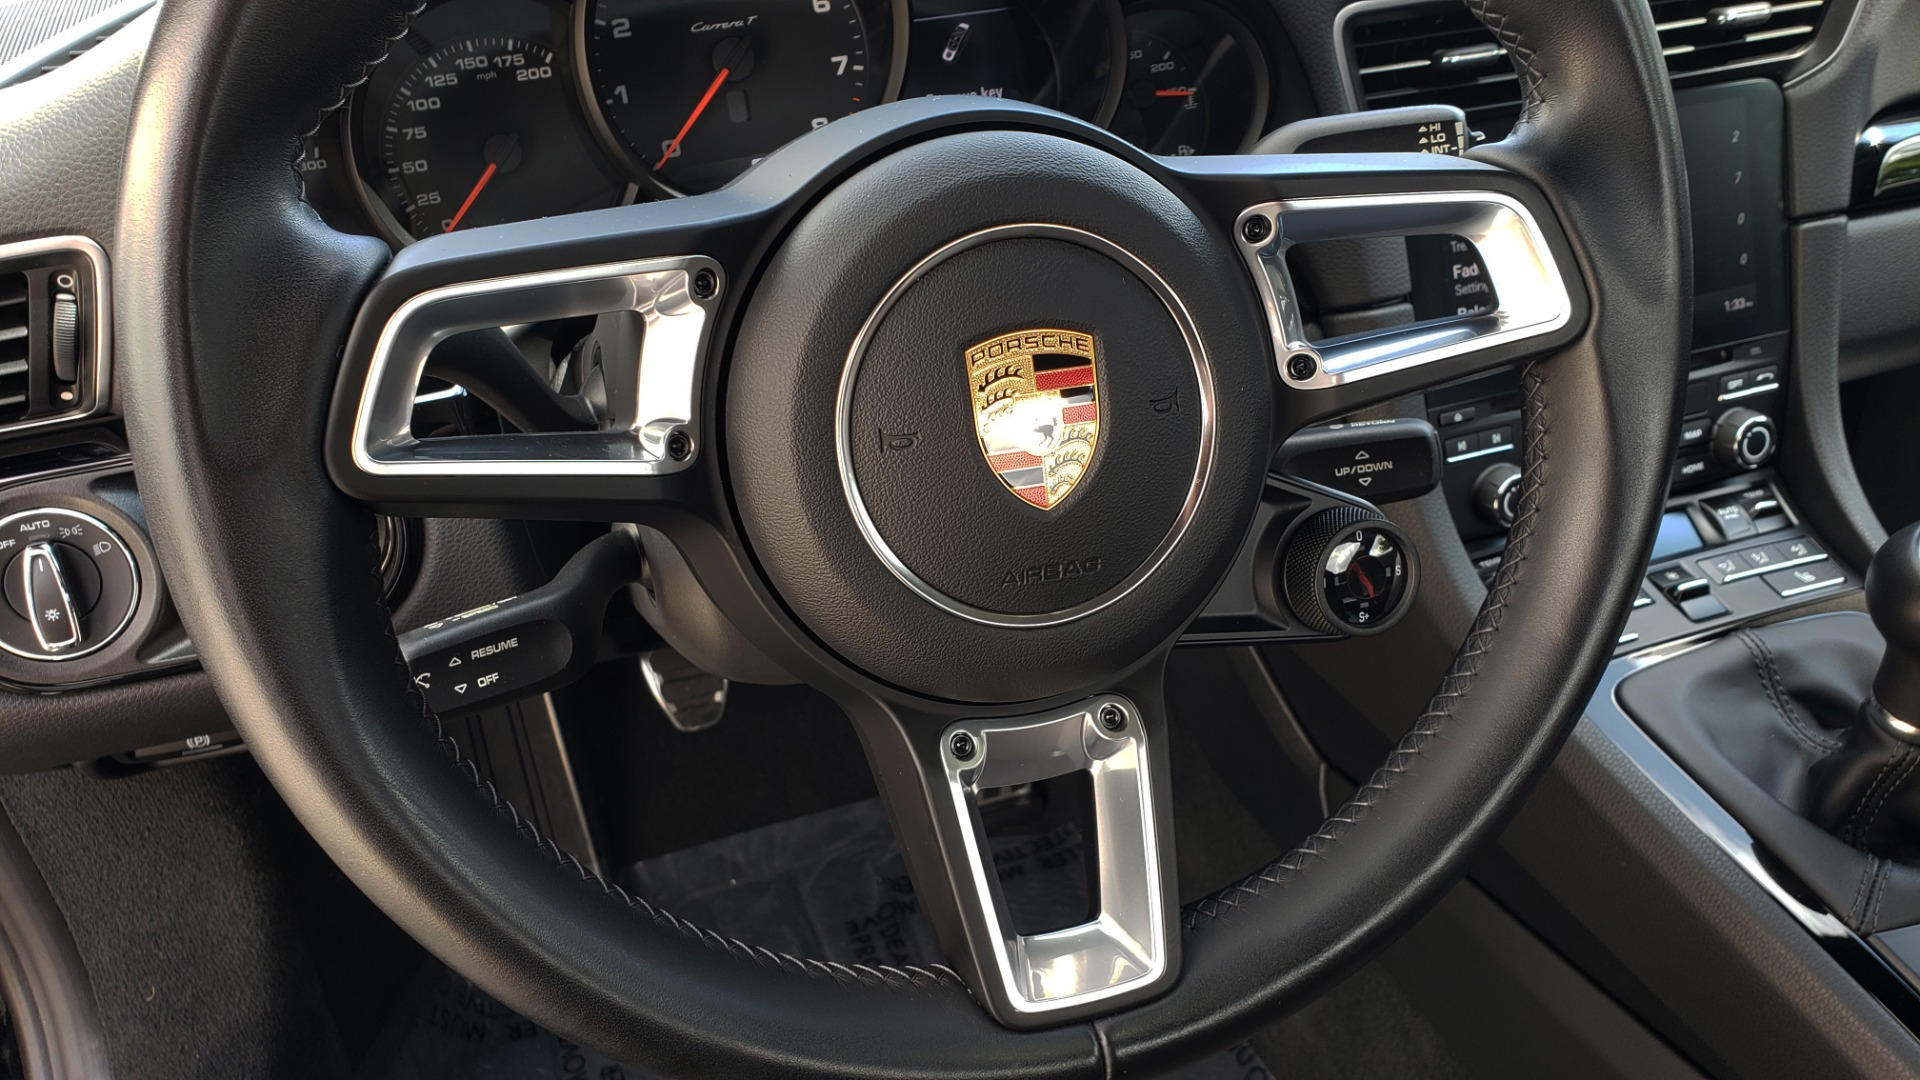 Used 2019 Porsche 911 CARRERA T / 3.0L H6 / MANUAL / PREMIUM / NAV / BOSE / SUNROOF / REARVIEW for sale $117,000 at Formula Imports in Charlotte NC 28227 49